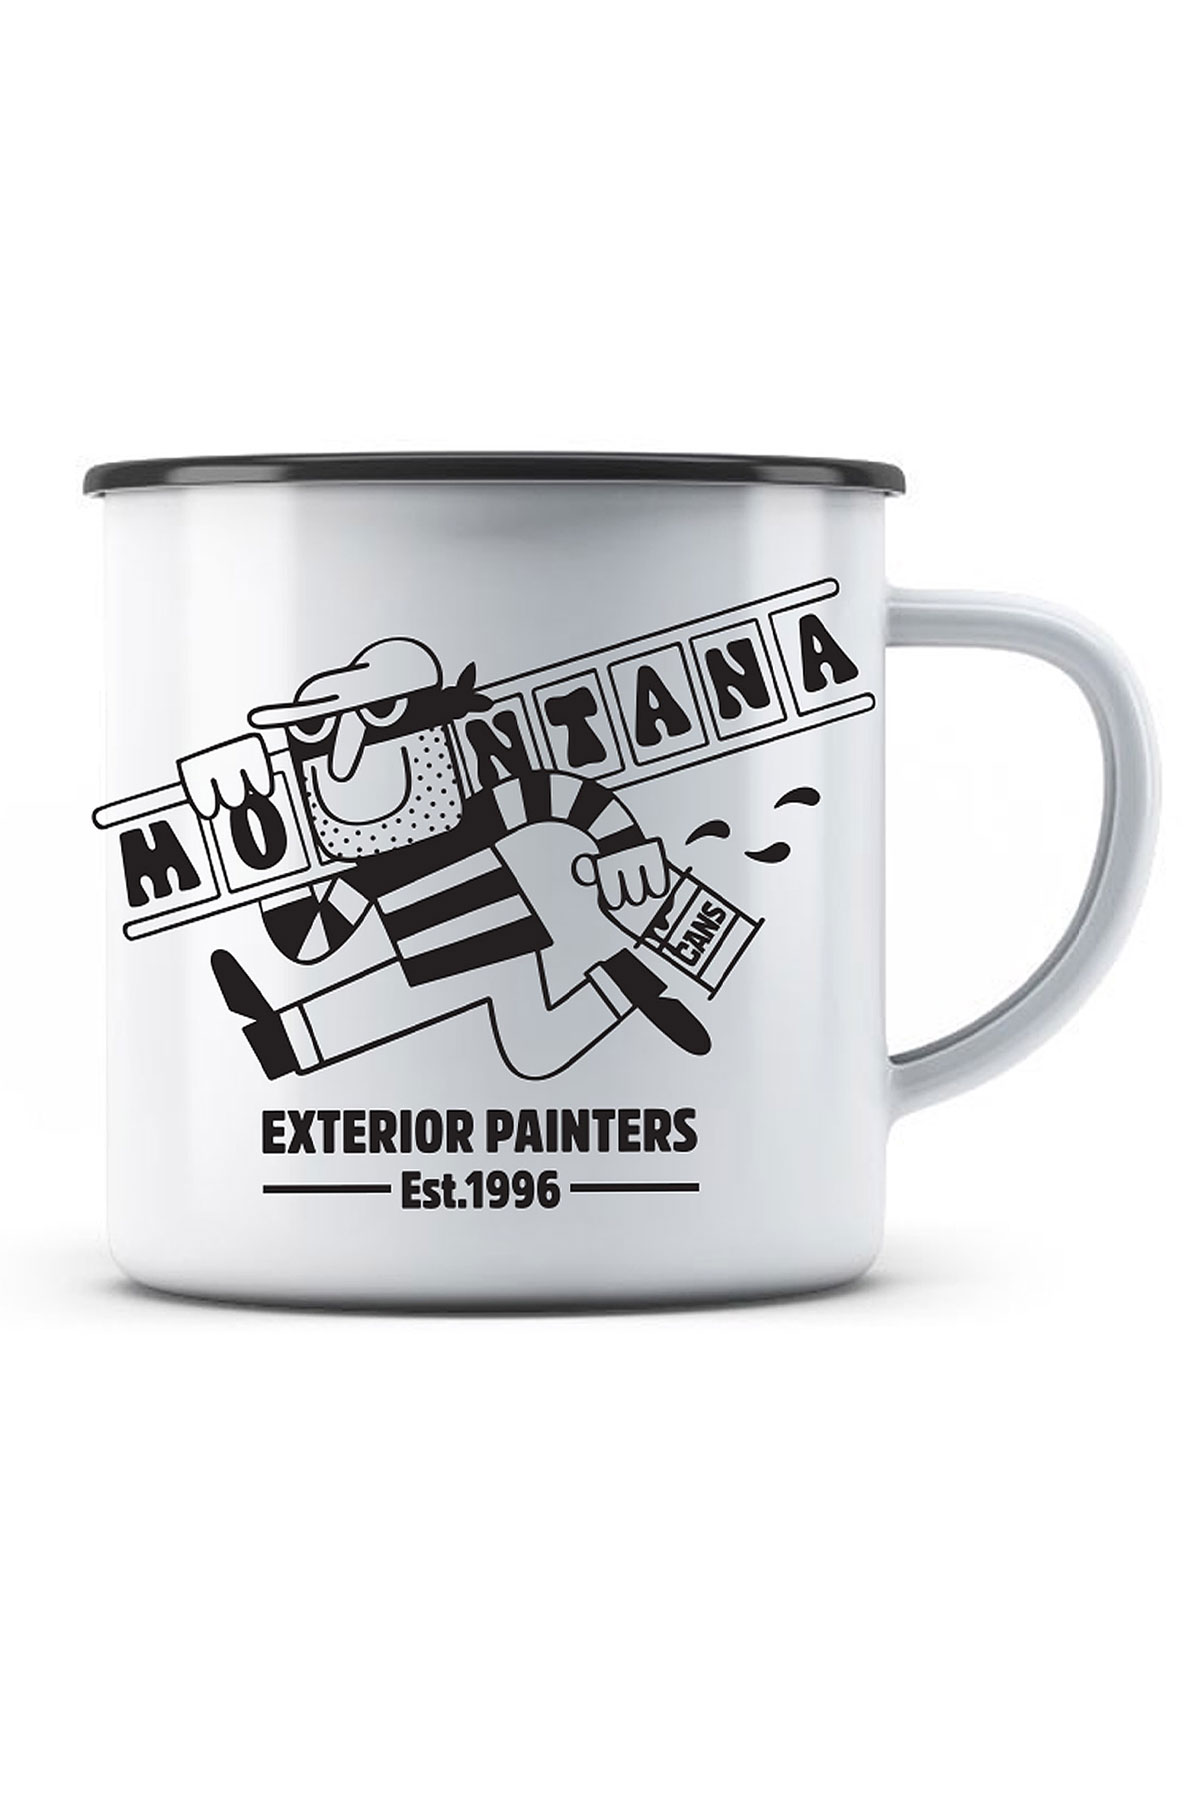 Montana EXTERIOR PAINTERS Tazza by 45RPM